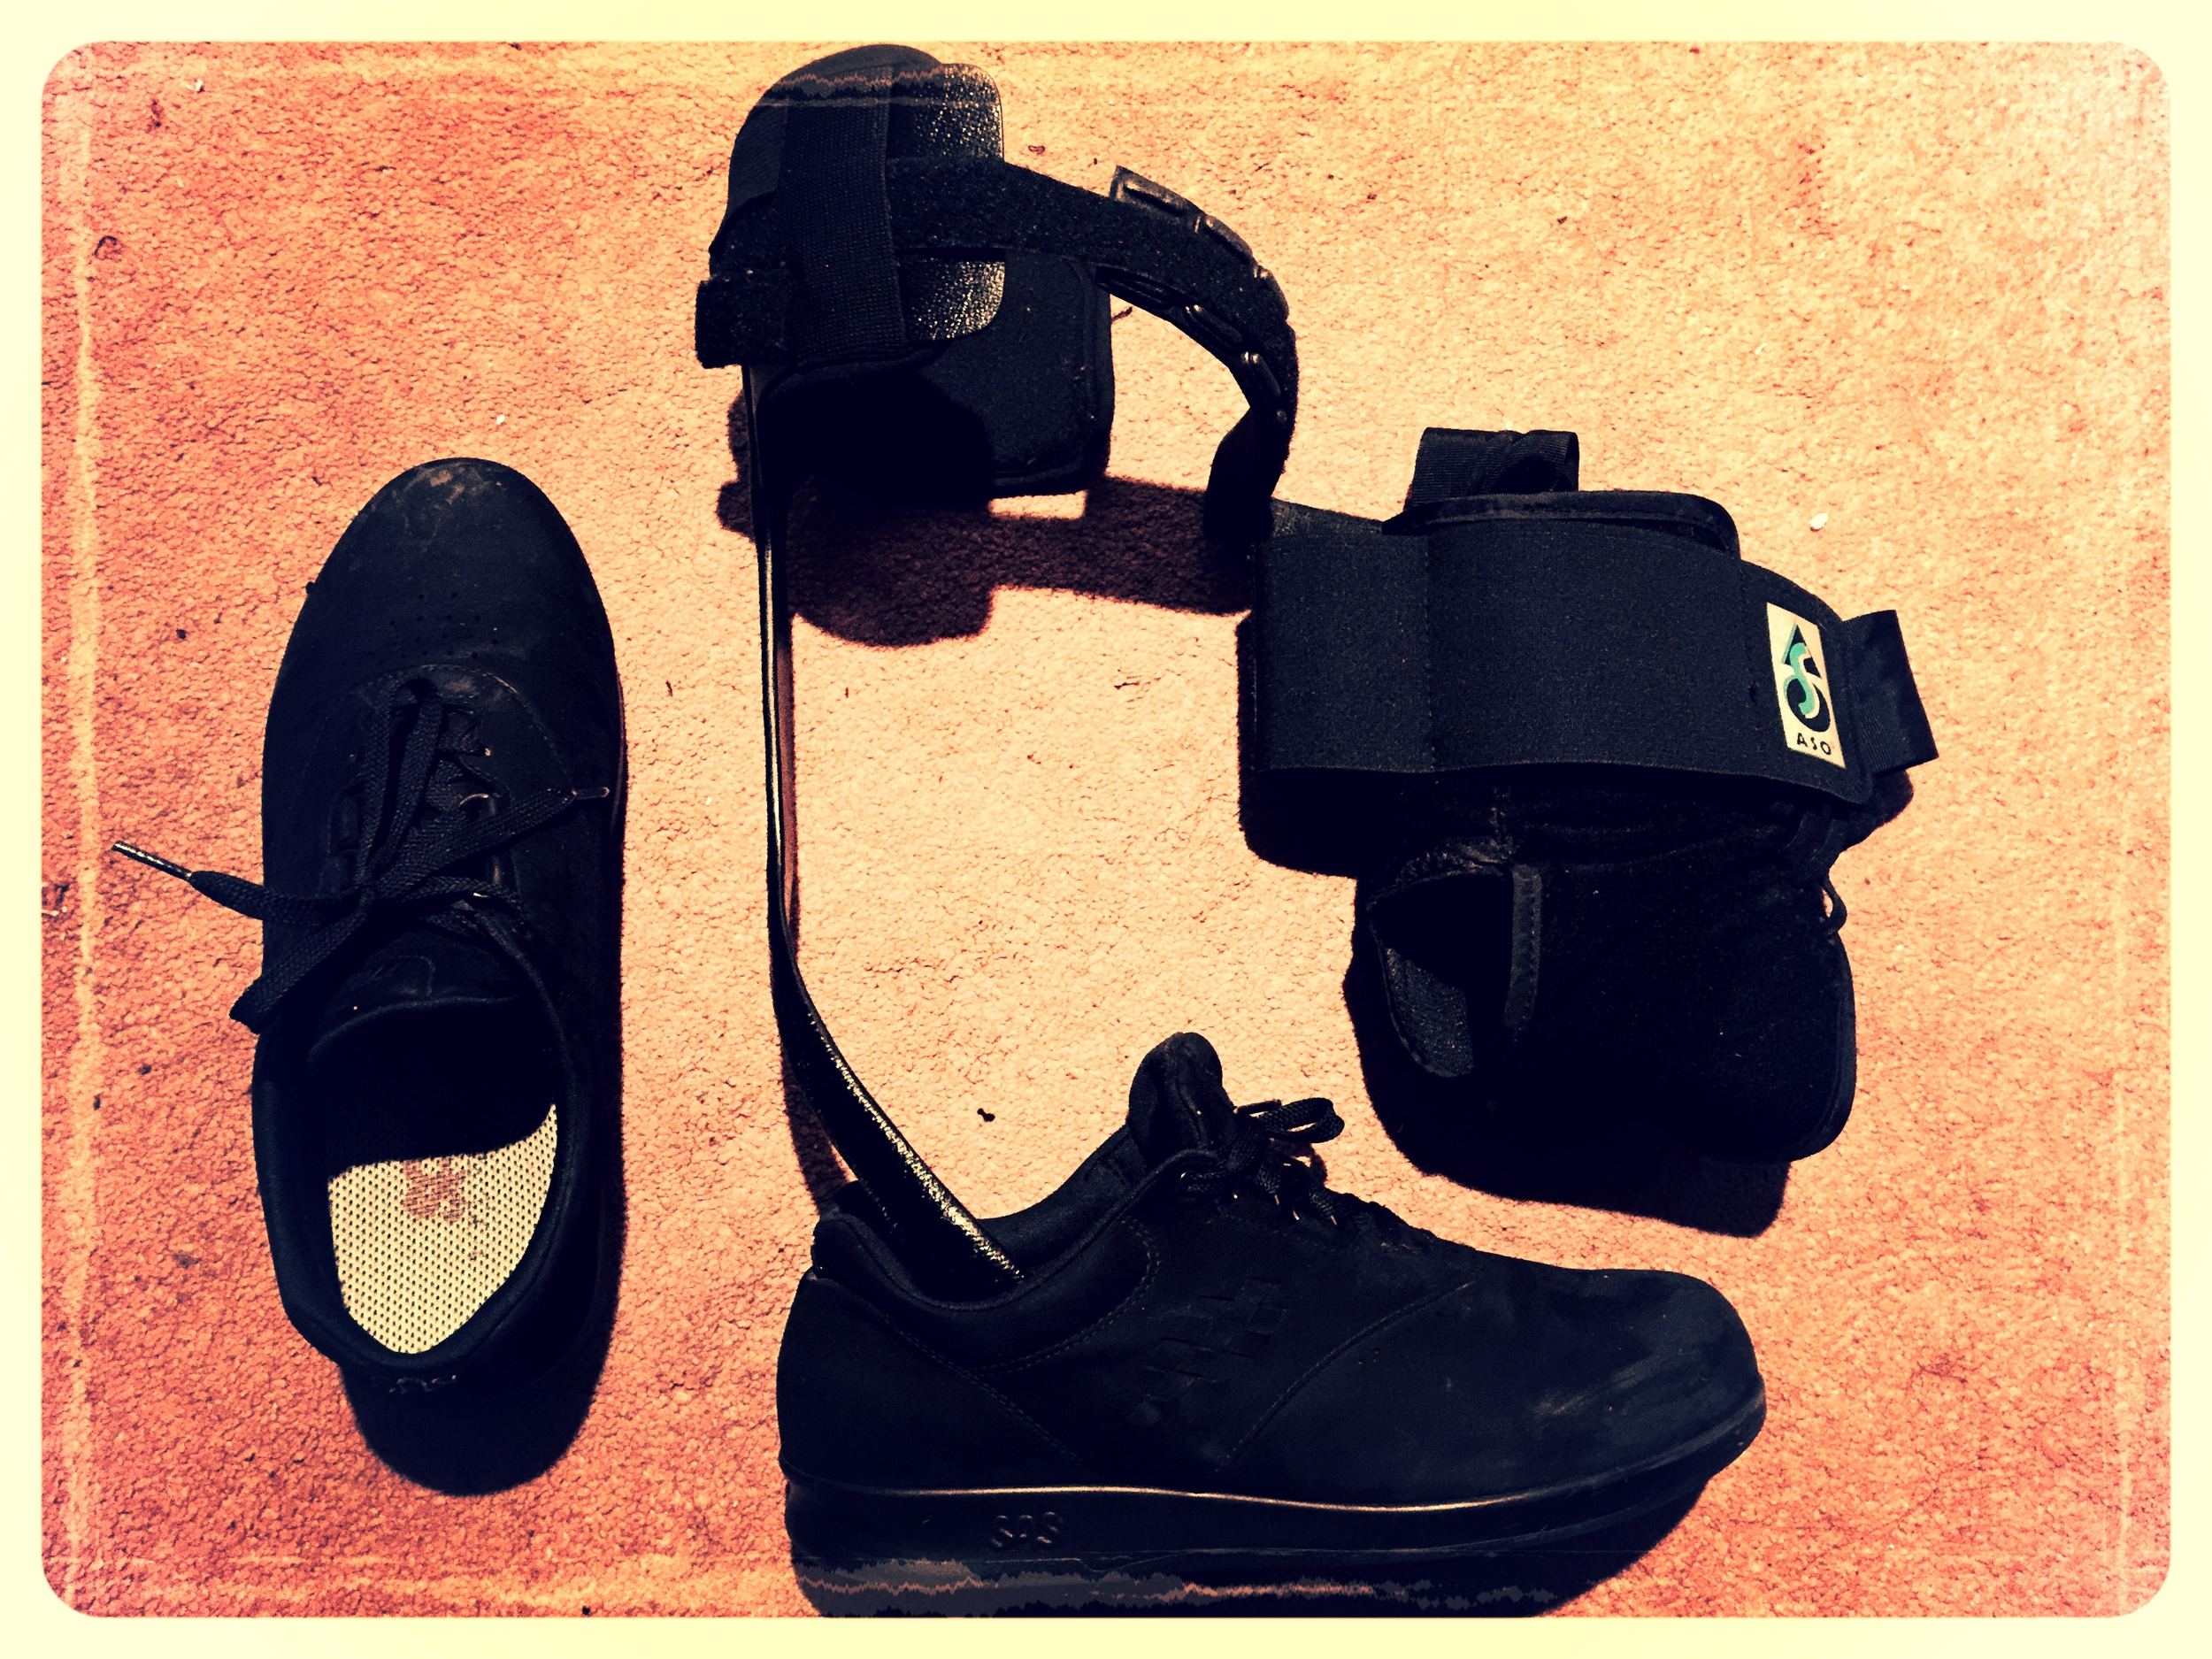 Adaptive Equipment: Leg brace and specially fitted orthotic shoes (SAS)